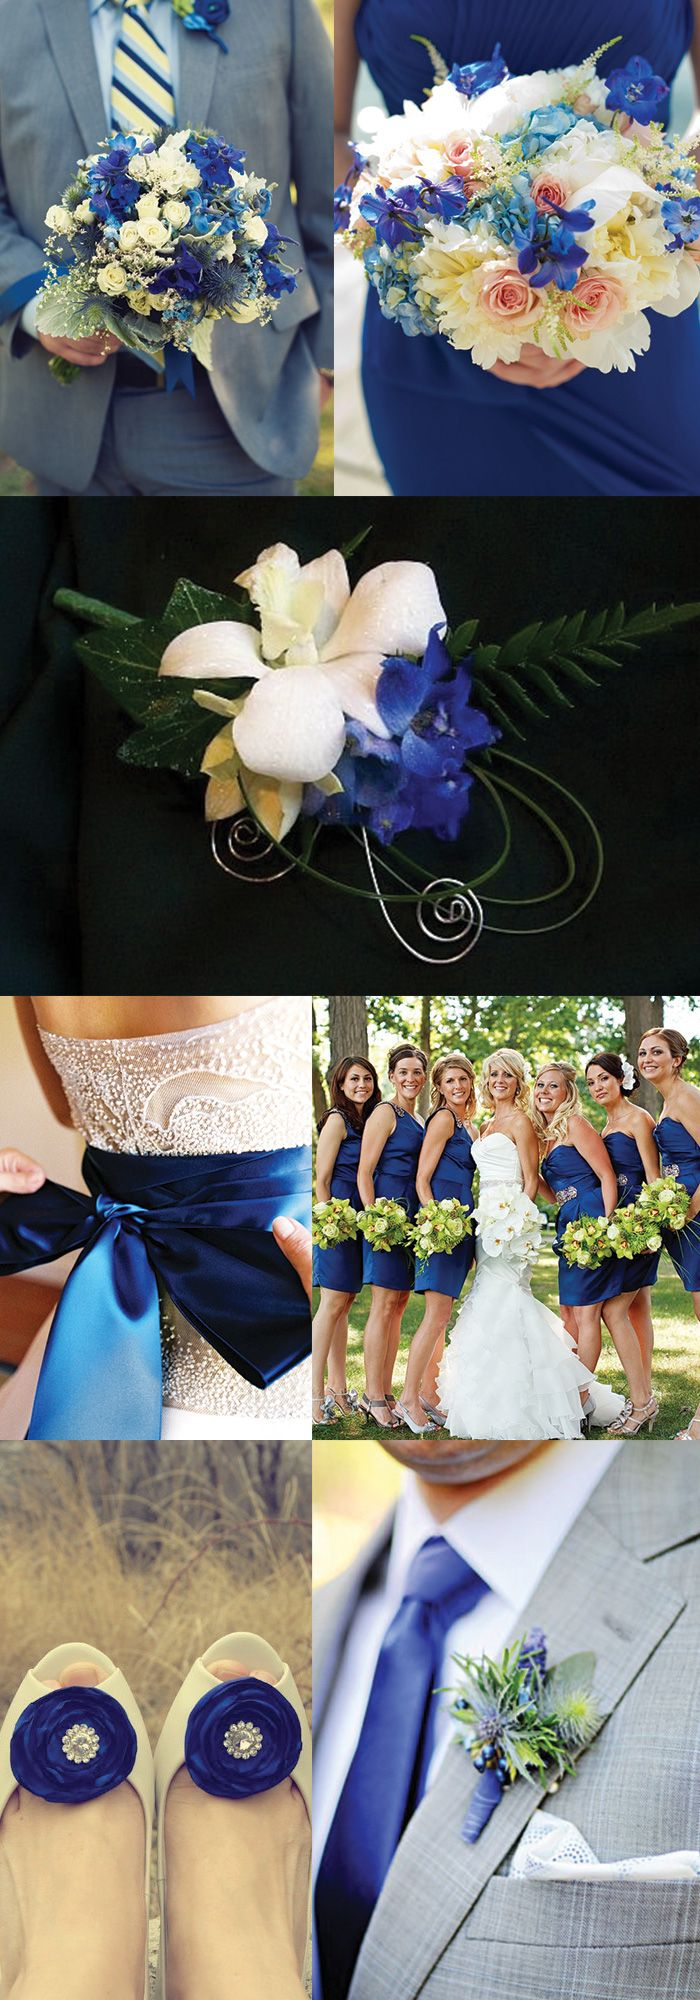 Horizon Blue Wedding Ideas to Swoon Over.